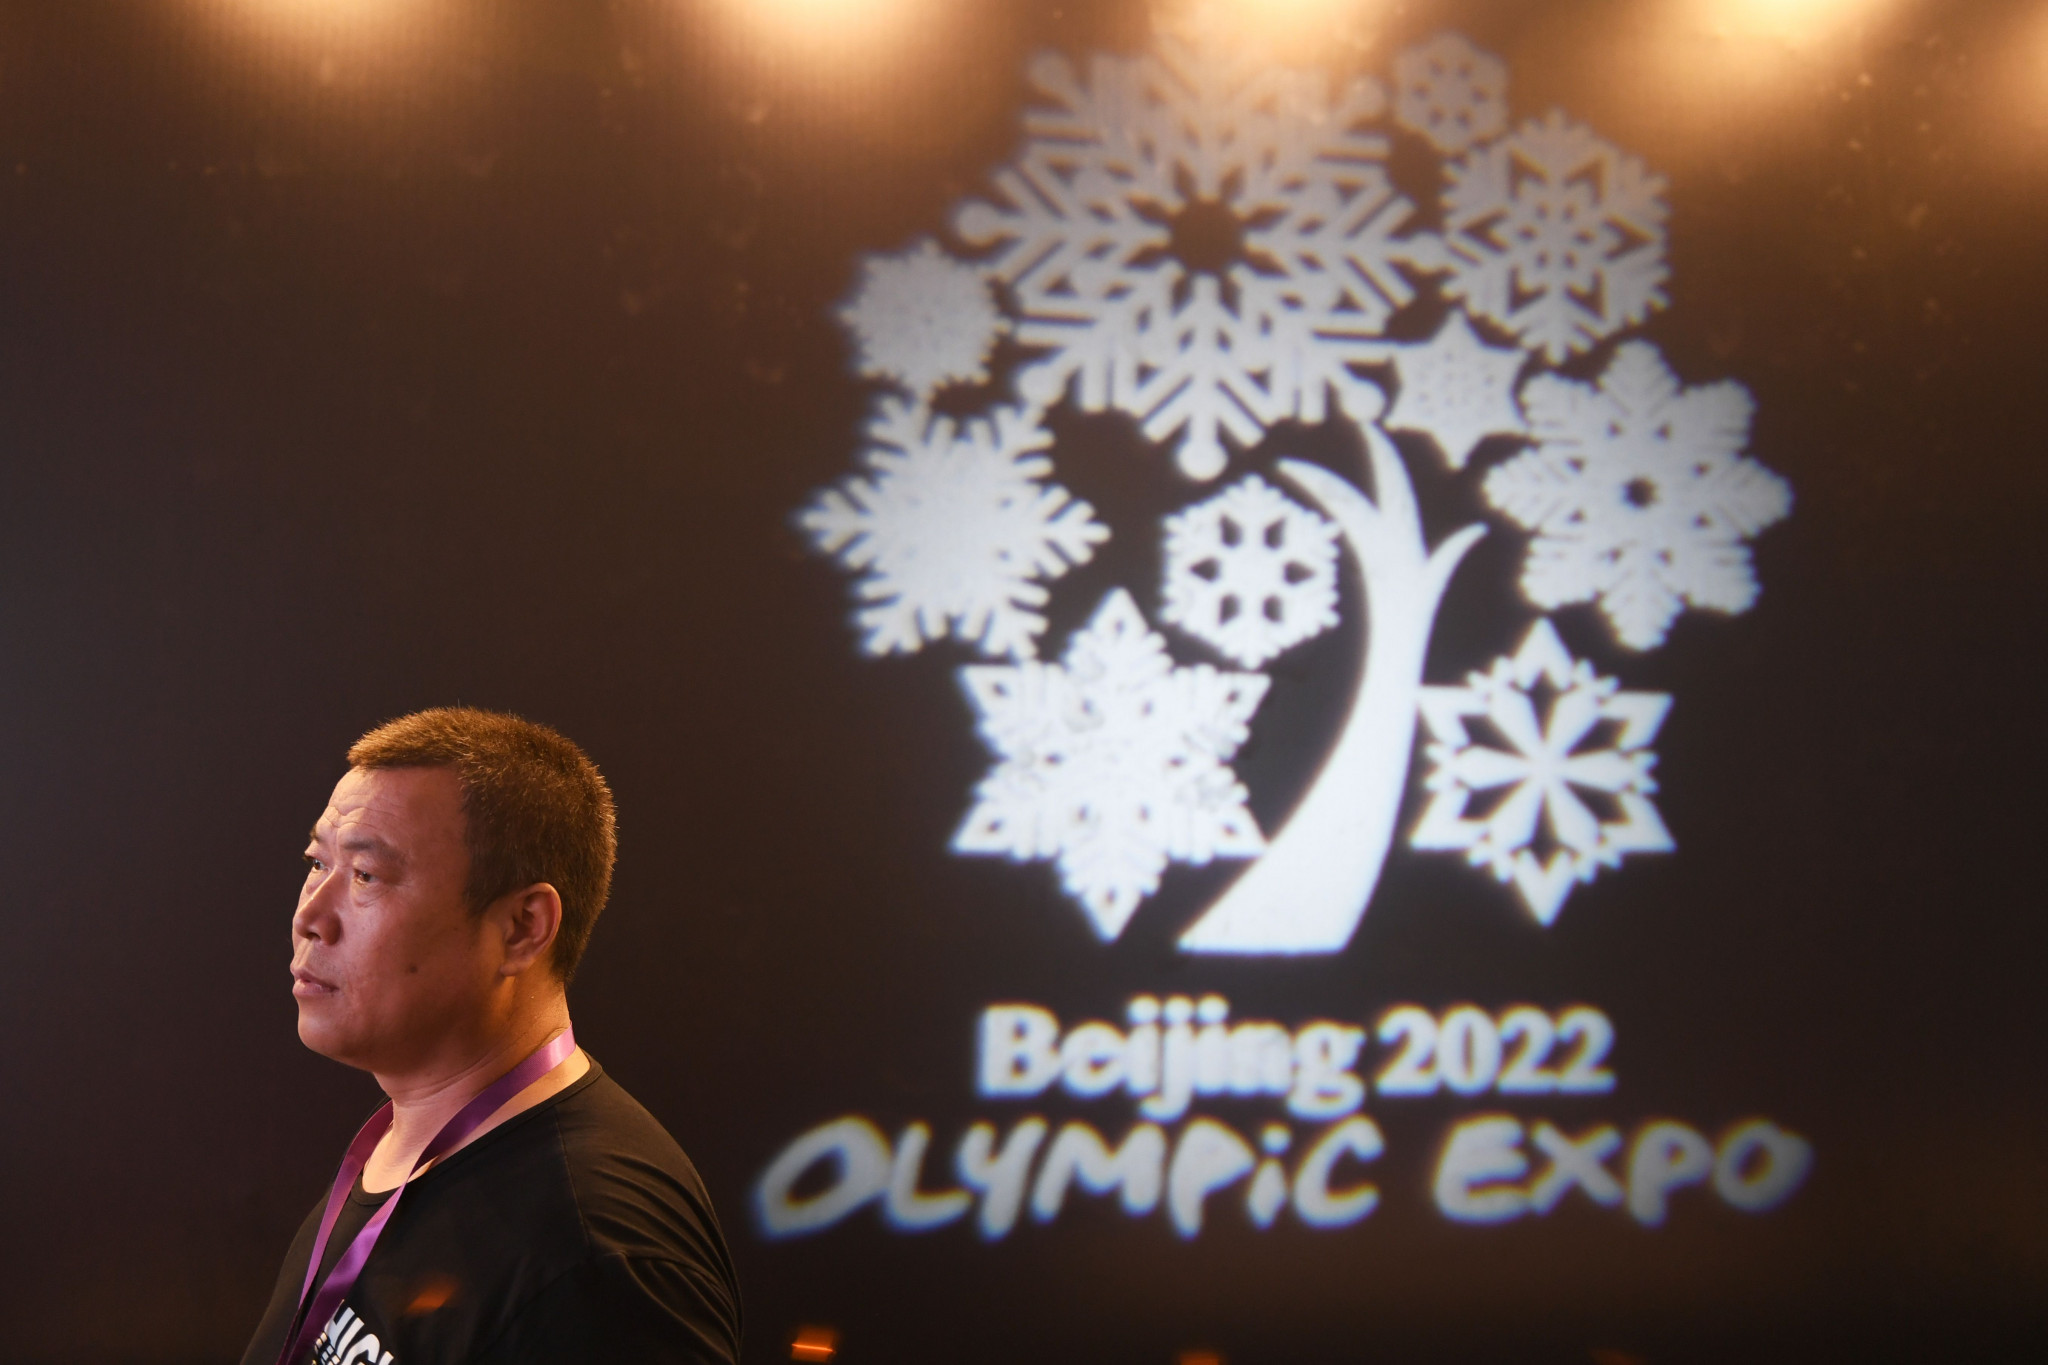 The competition was officially launched at an event held to mark 10 years since the Olympics began in Beijing ©Getty Images